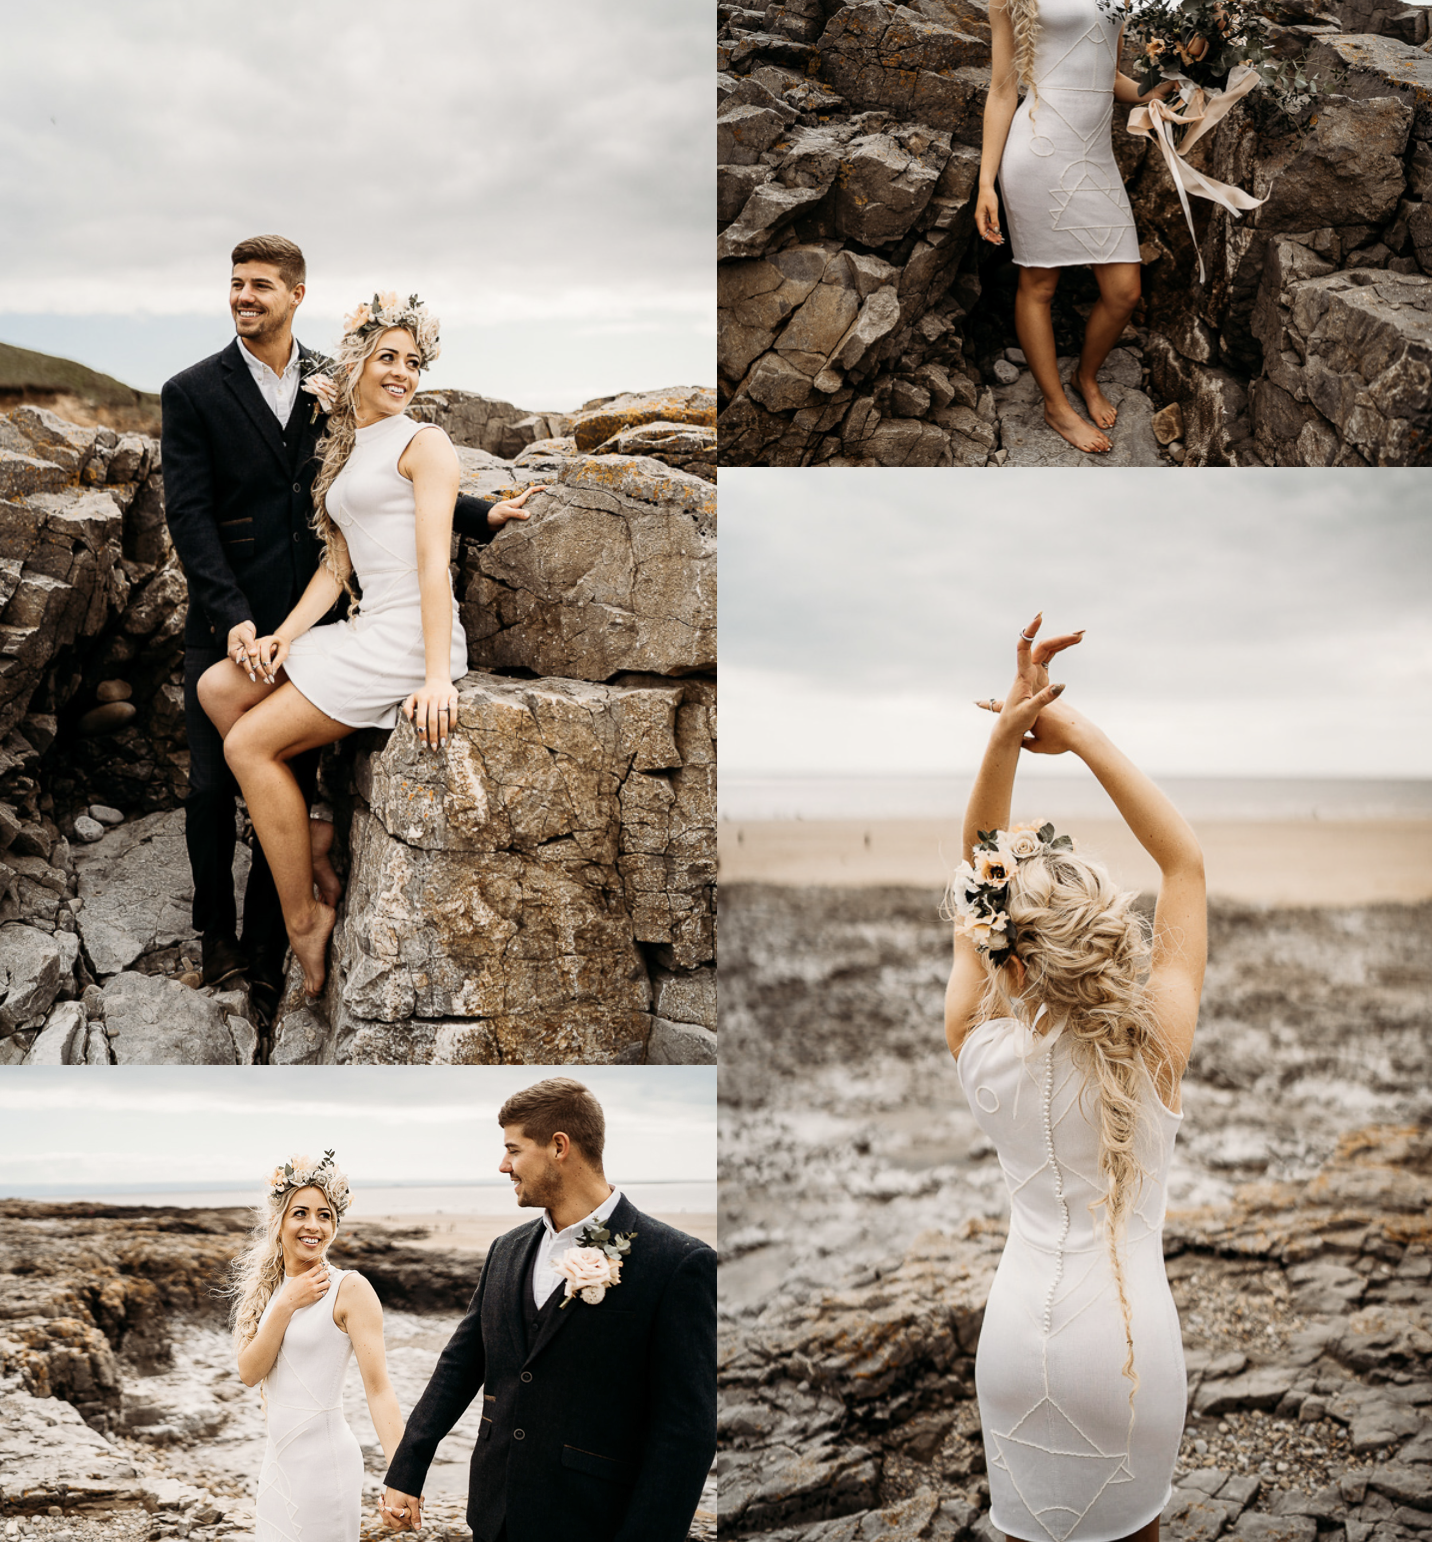 Leesha Williams Eco Beach Elopement with Coop Couture dress